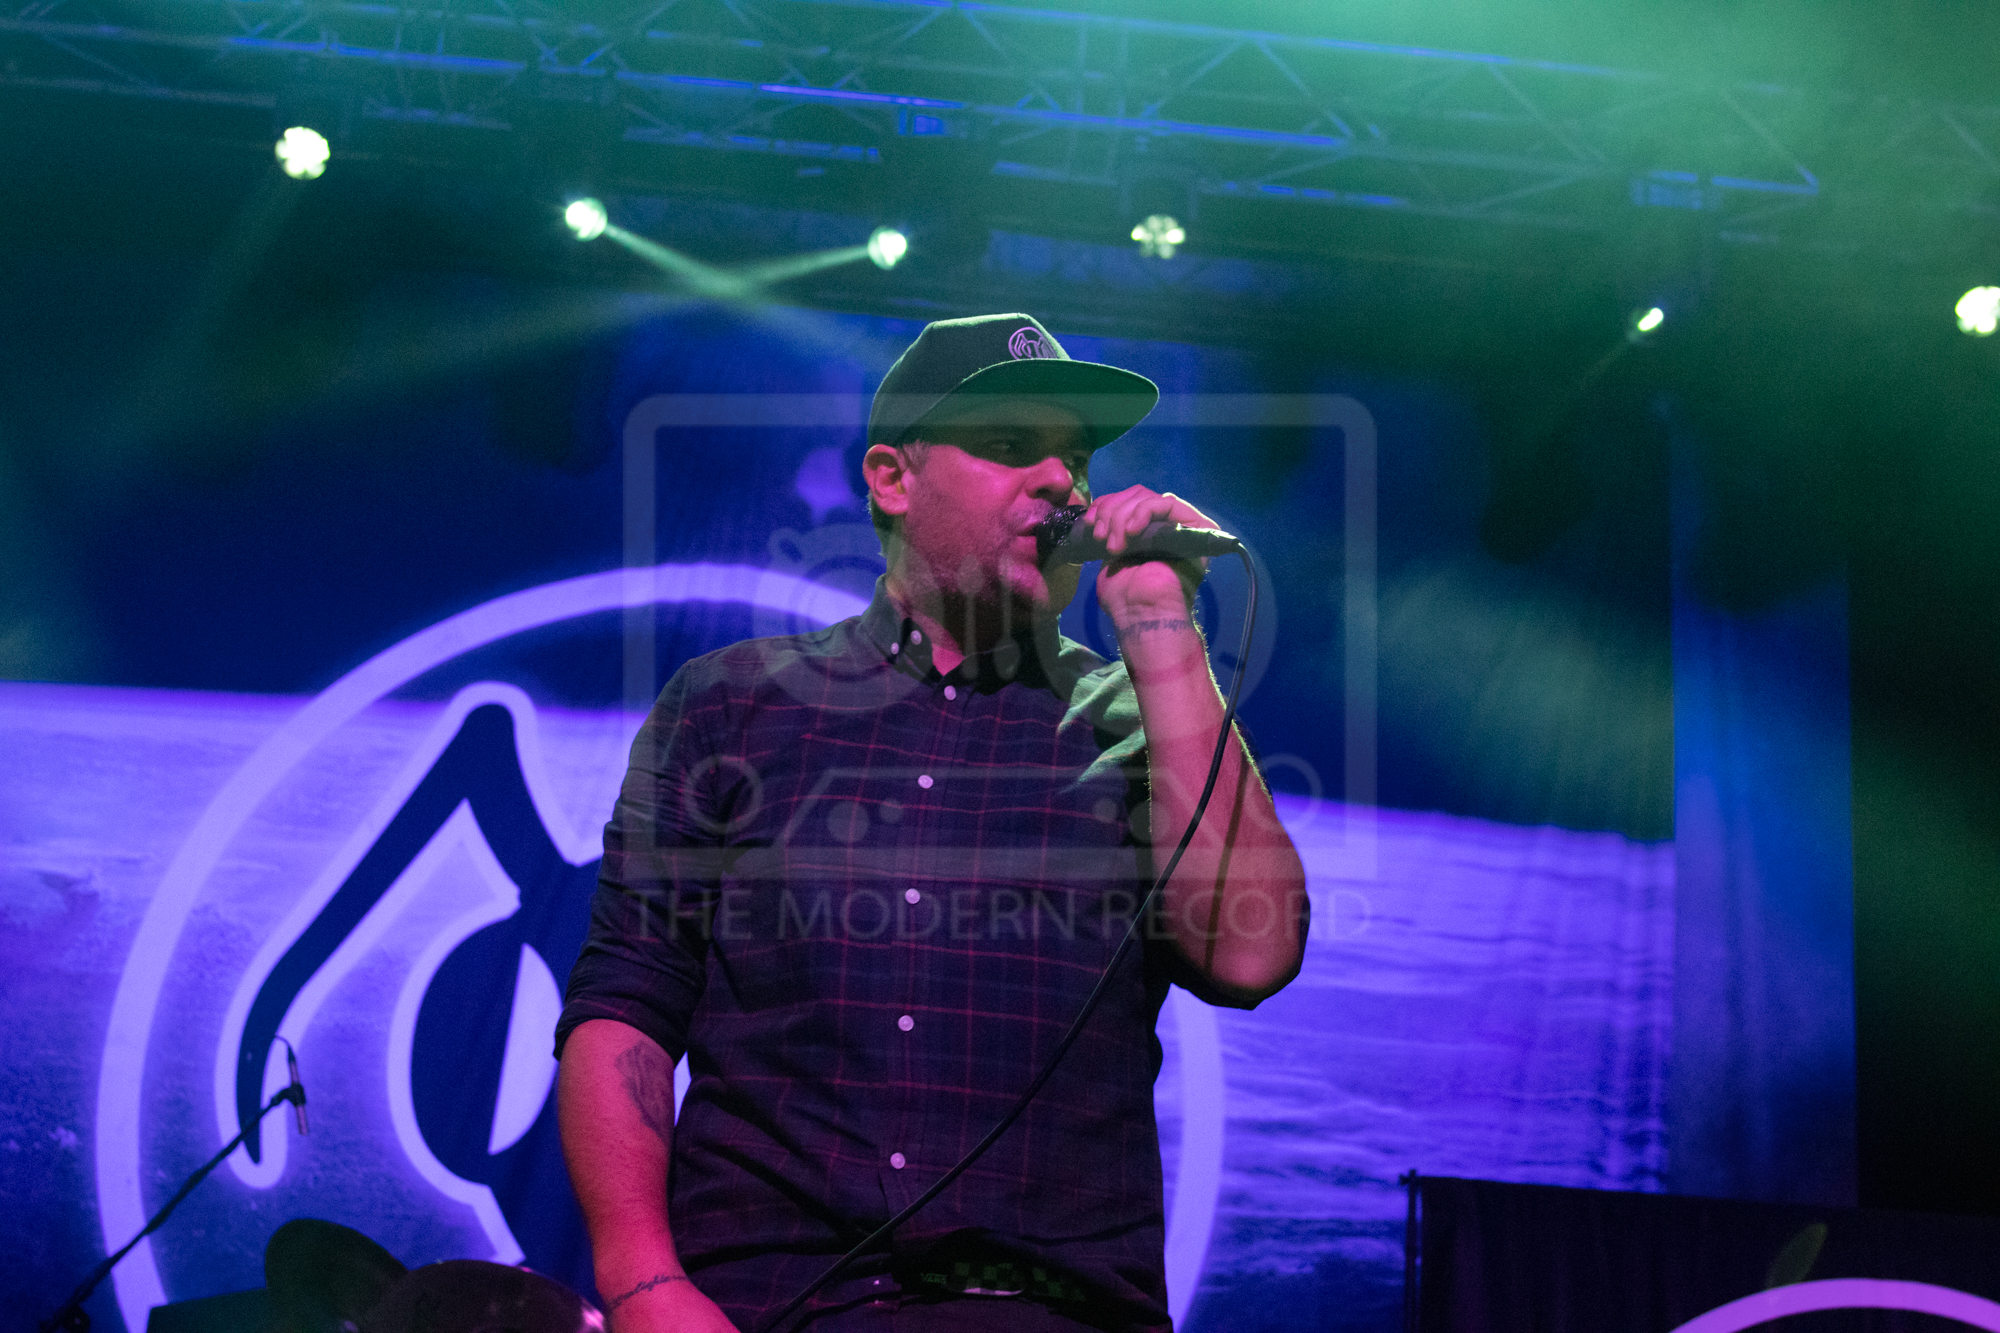 9 - Alien Ant Farm - O2 academy, Newcastle - 03-03-19 Picture by Will Gorman Photo-4106.JPG